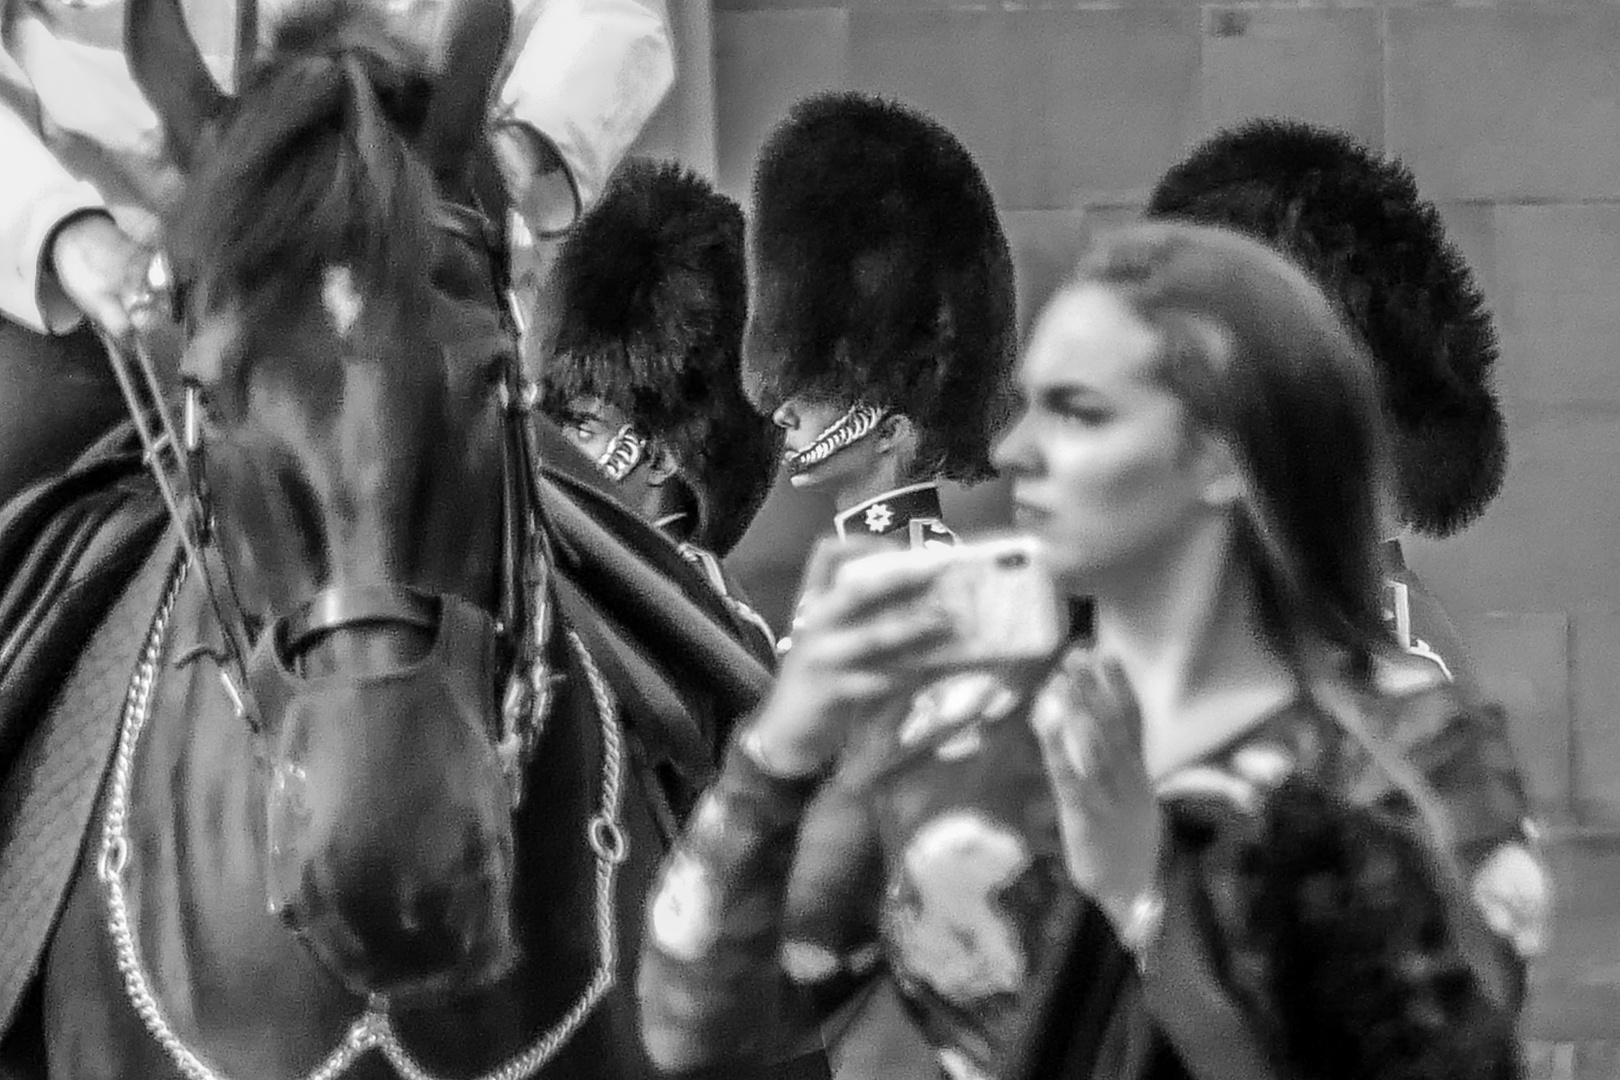 Horse Guards?